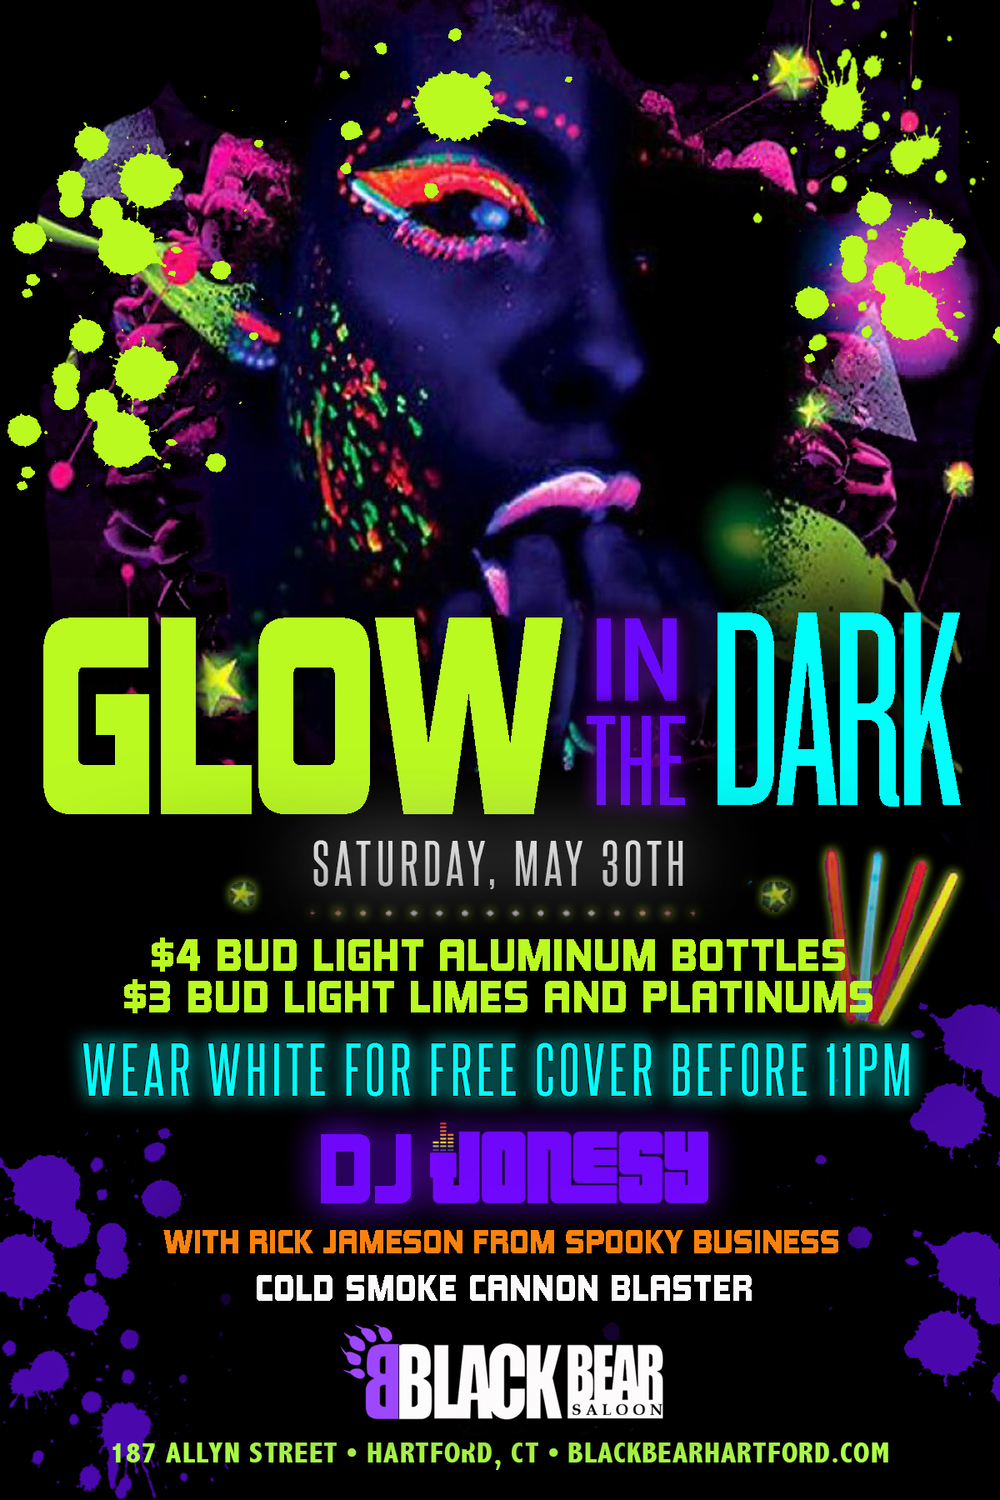 Saturday, May 30th join us at Black Bear in Hartford, CT for the monthly 'GLOW IN THE DARK' Party with music by JONESY + Rick Jameson of Spooky Business.  Wear all WHITE for free cover before 11pm.  $4 Bud Light Aluminum Bottles, $3 Bud Light Limes + Platinums.  CLUB CANNON ON STAGE.